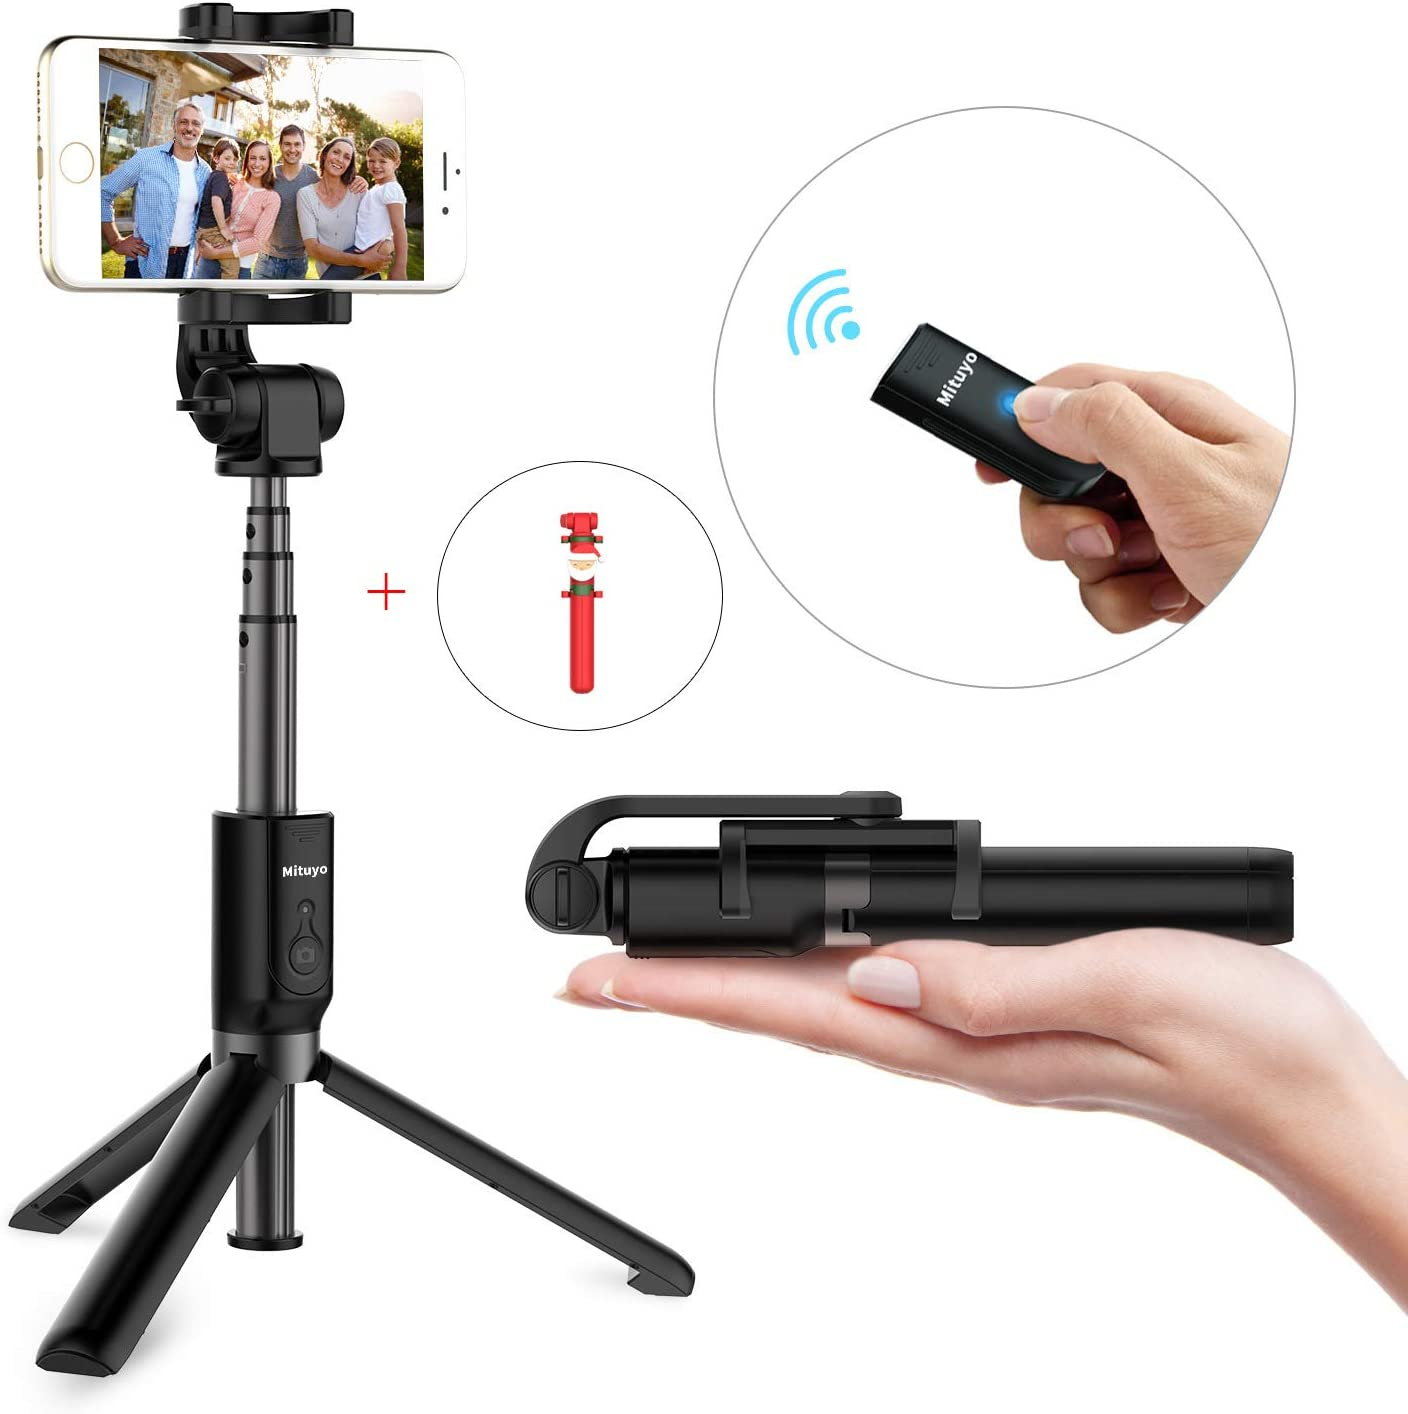 Mituyo, Bluetooth Selfie Stick Tripod Monopod with Wireless Remote Shutter Compatible with iPhone, Samsung, Huawei, Other Smartphones (Black, Standard)